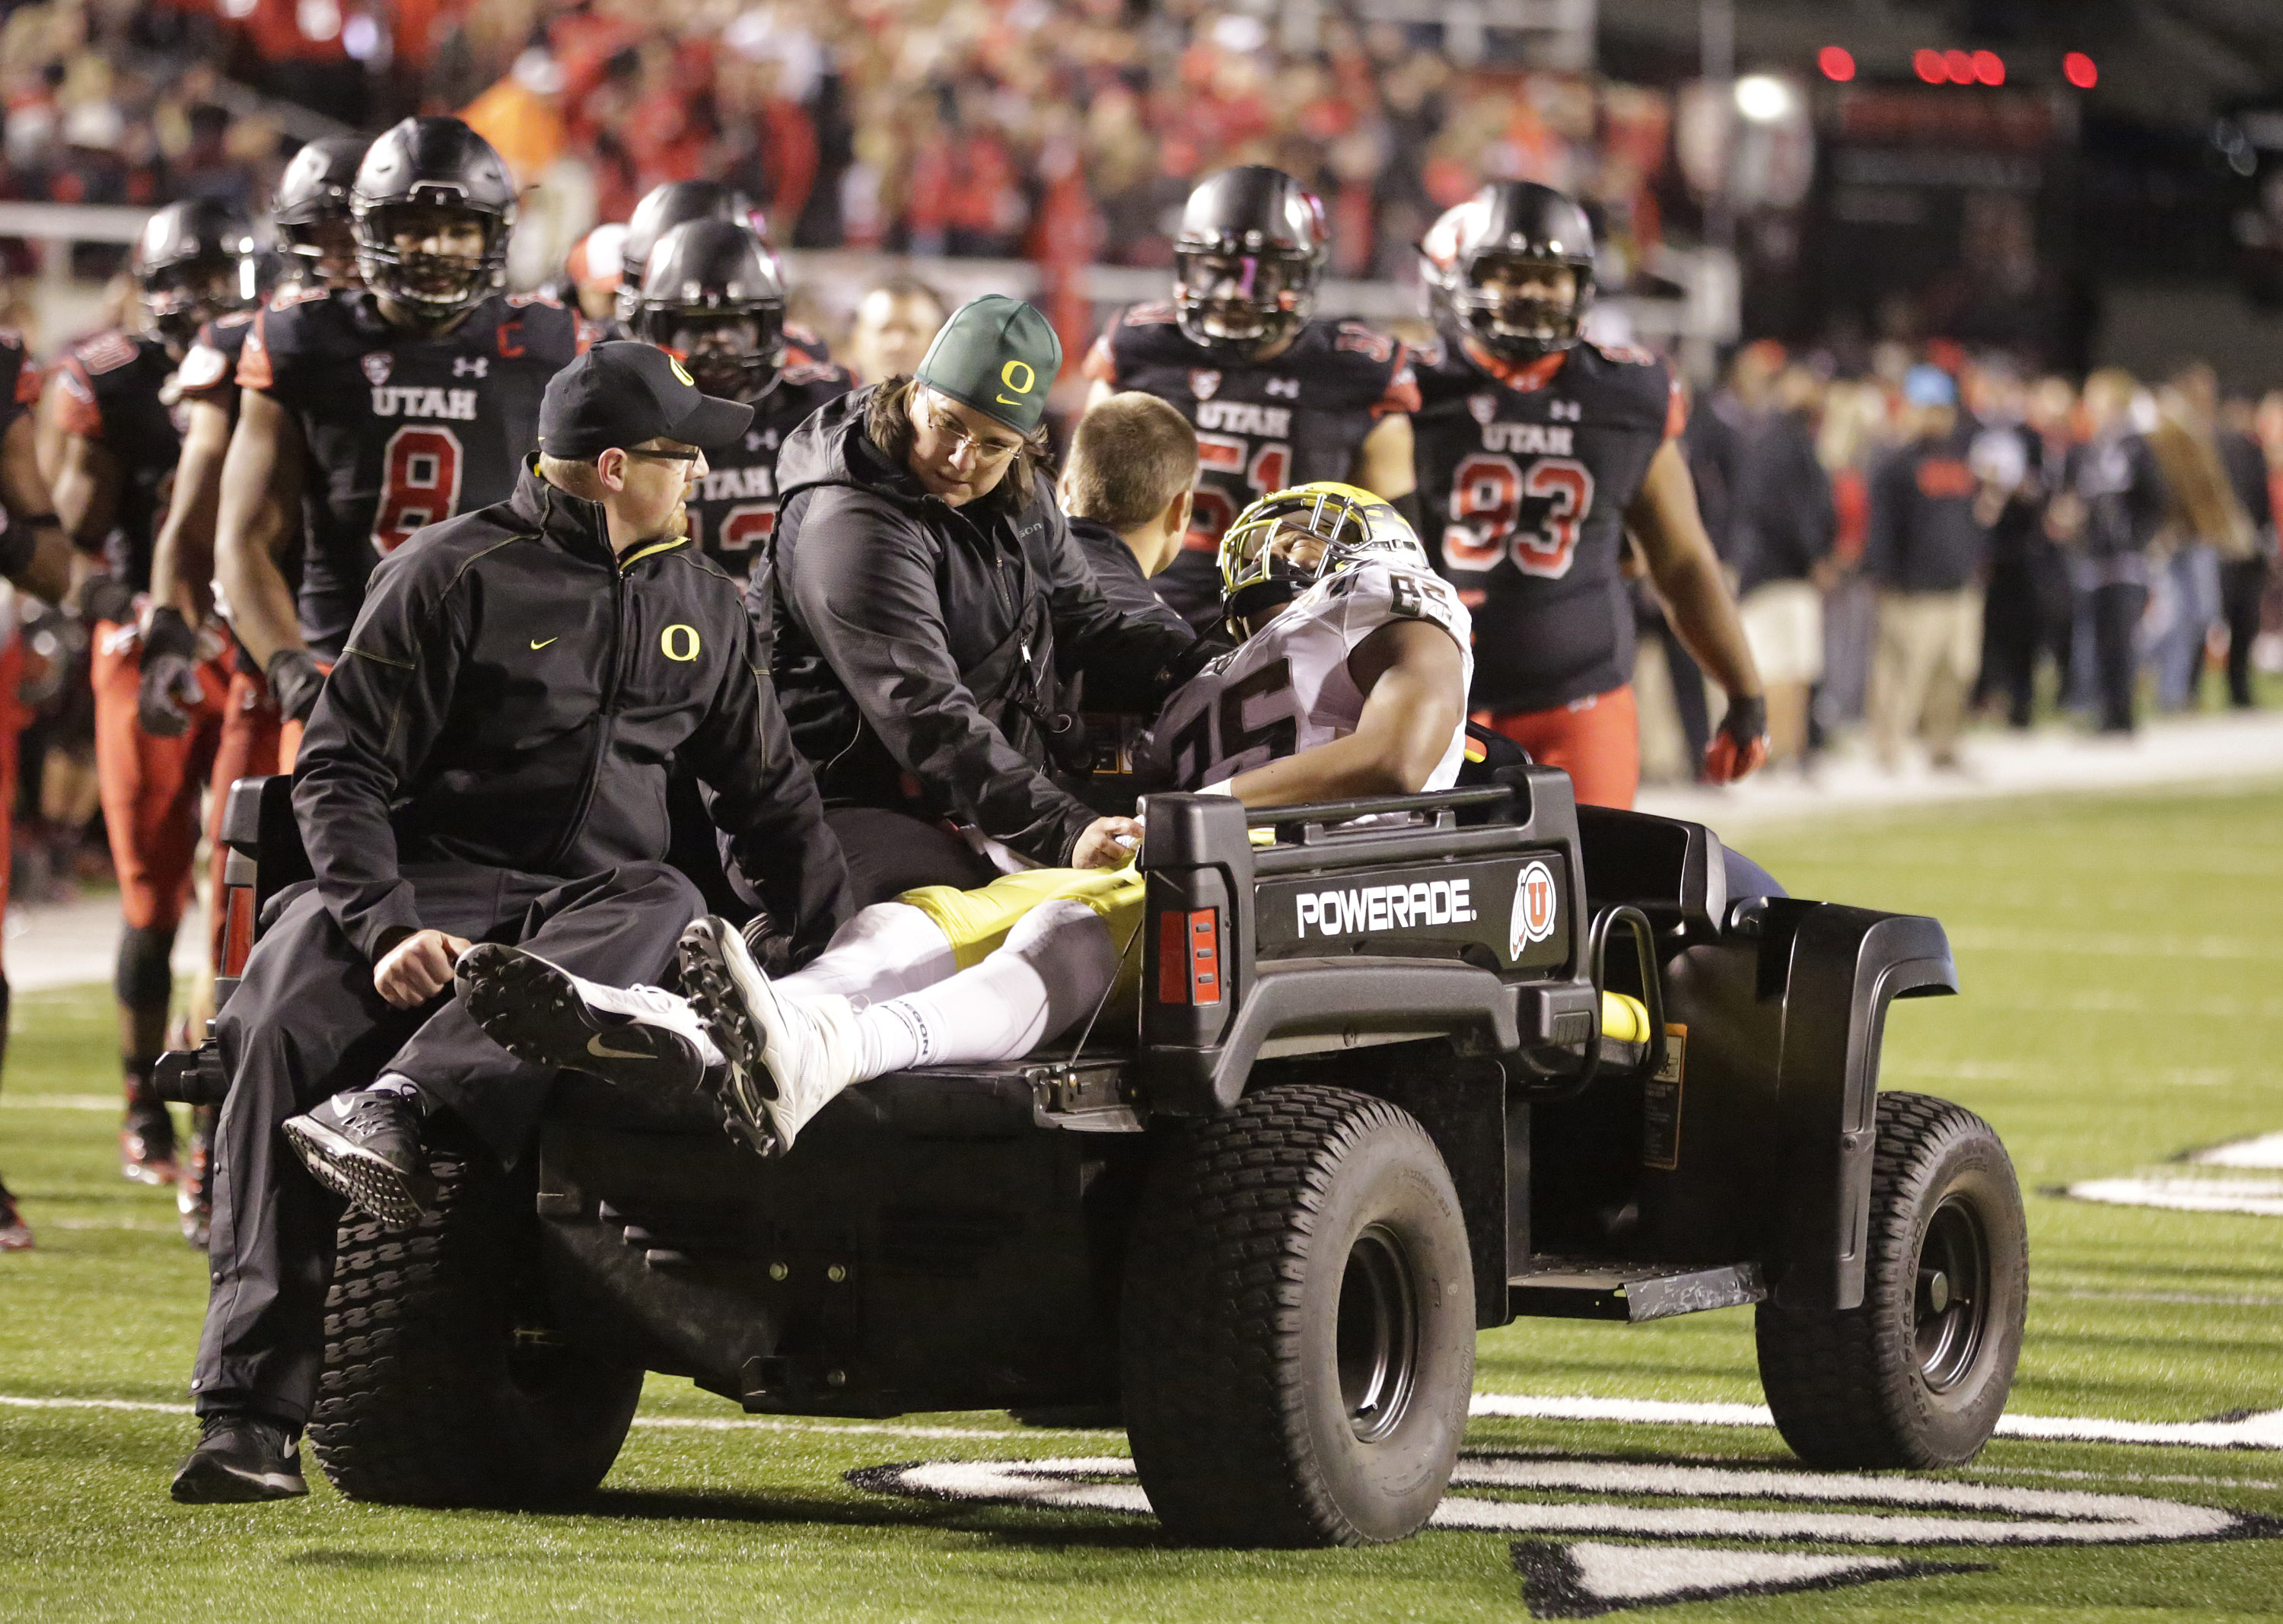 FILE - In this Saturday, Nov. 8, 2014 file photo, Oregon tight end Pharaoh Brown (85) is taken from the field after being injured in the fourth quarter during an NCAA college football game against Utah in Salt Lake City. Oregon tight end Pharaoh Brown ste